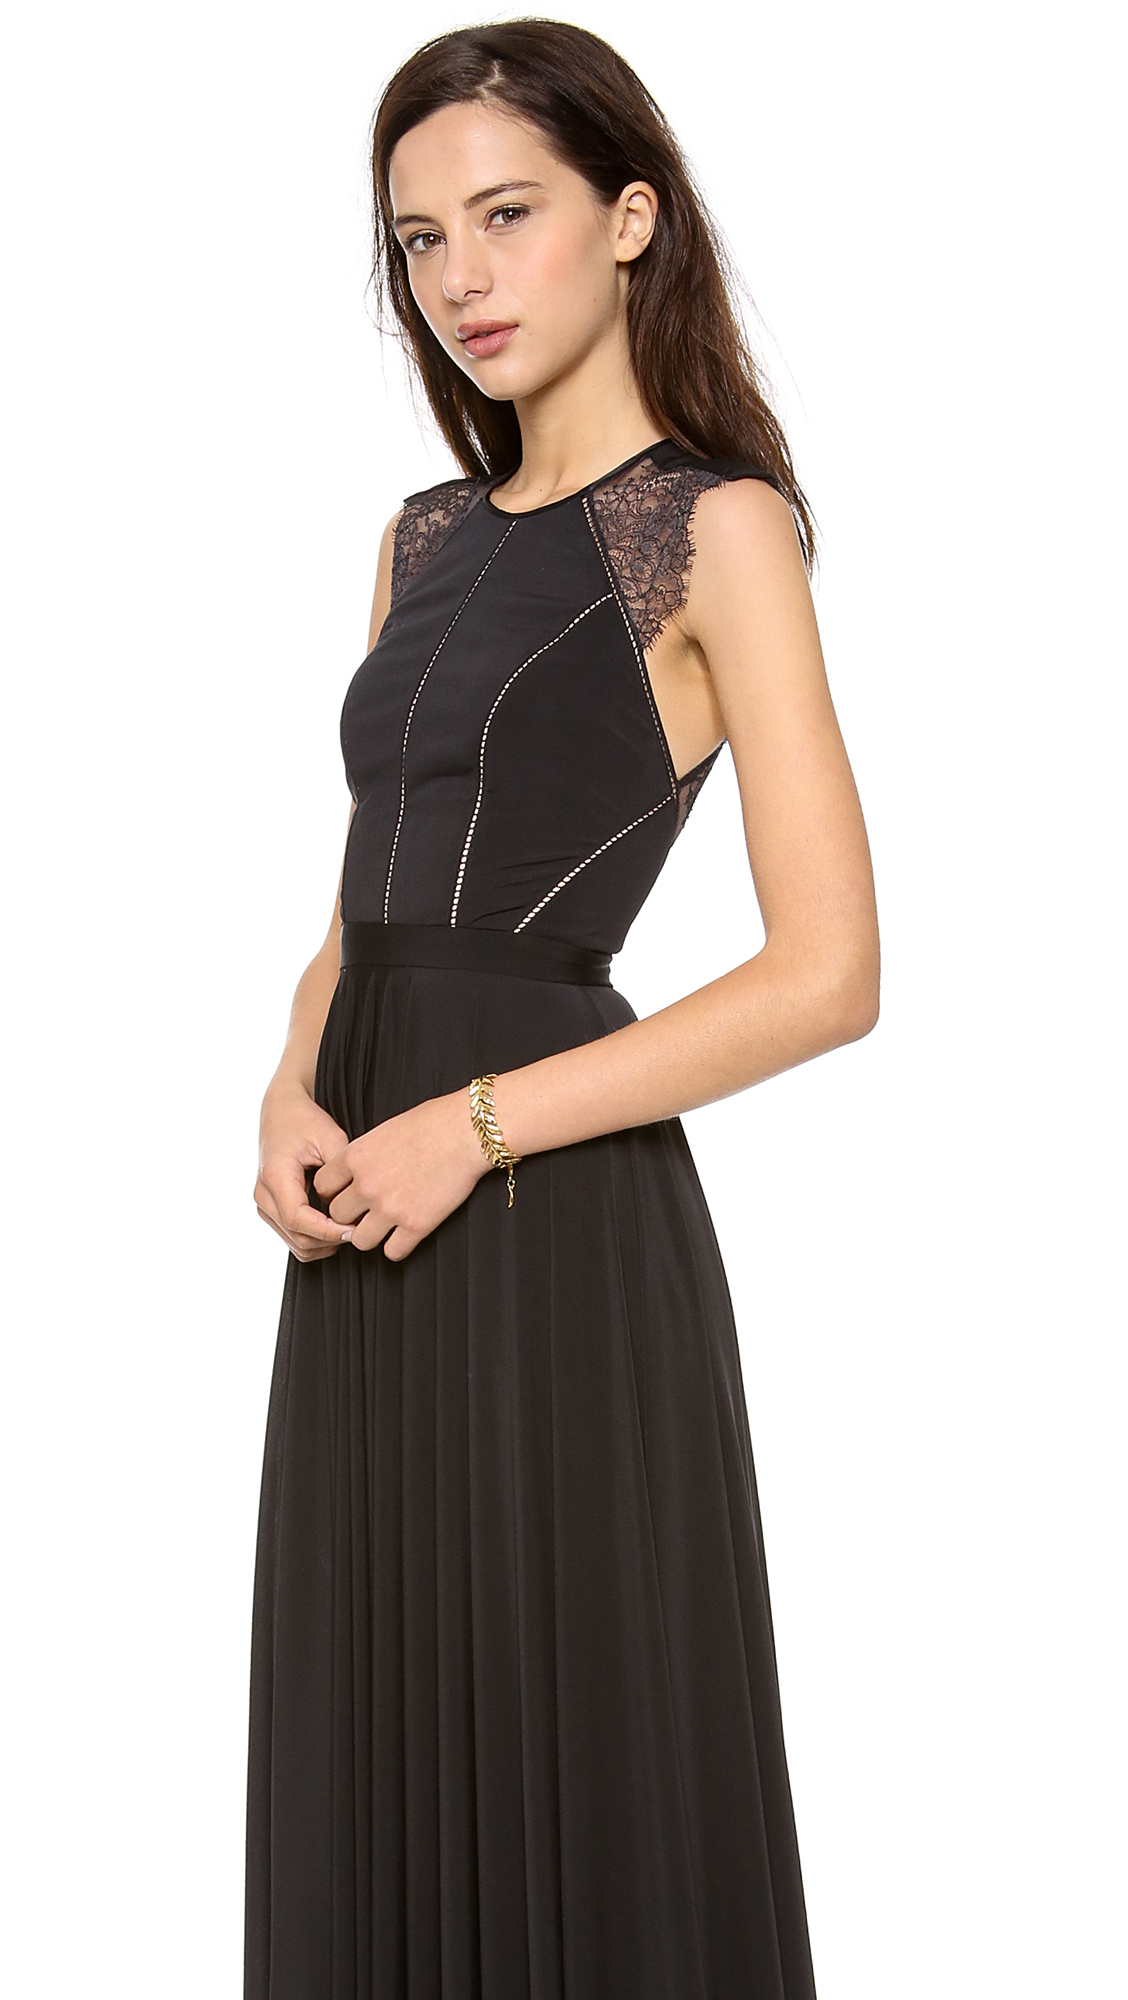 Lyst - Catherine Deane Simone Lace Back Gown in Black